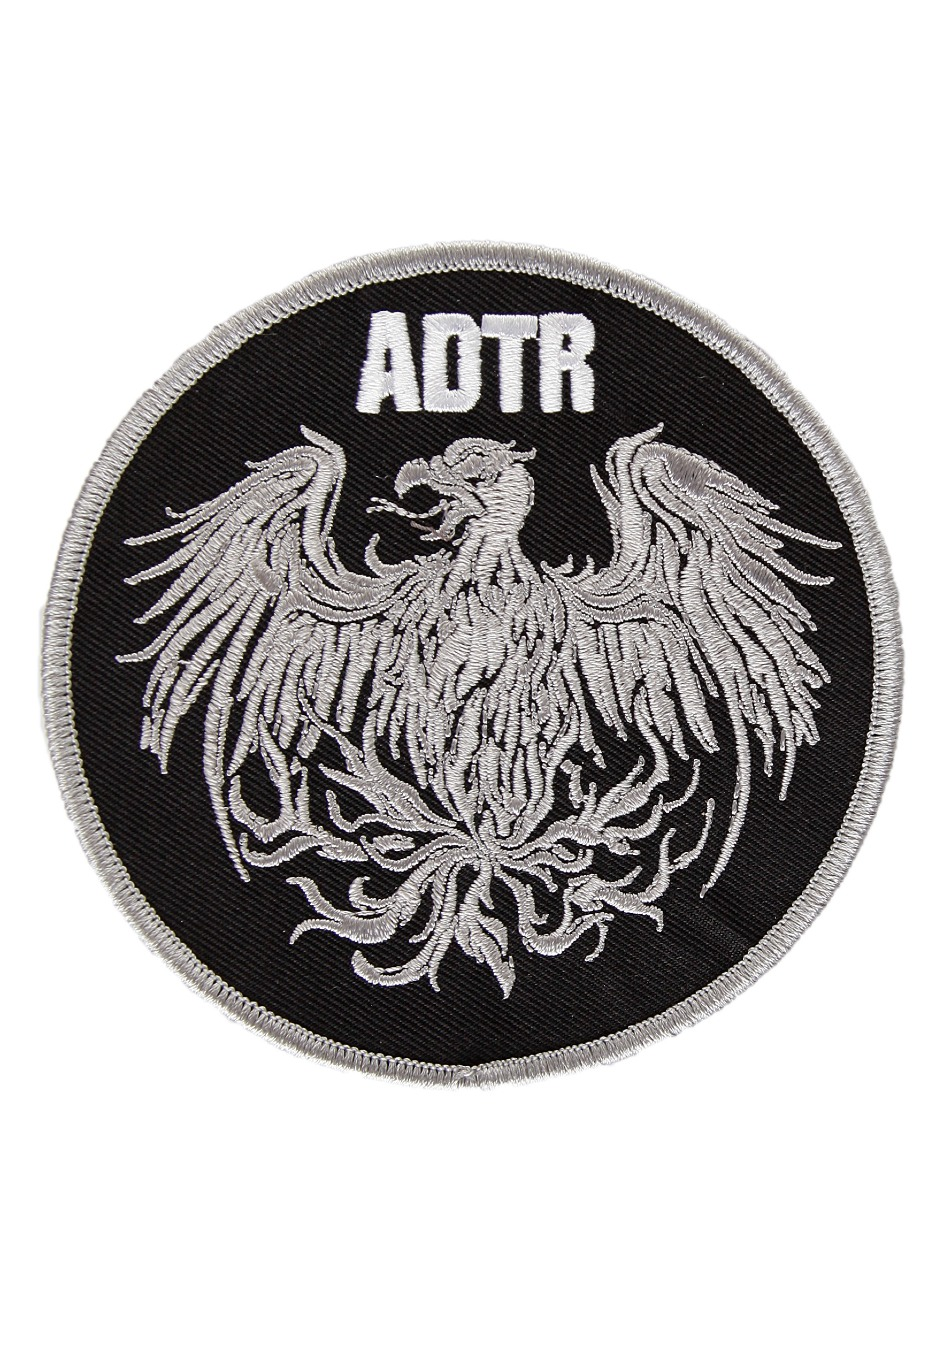 A Day To Remember - Golden Eagle - Patch - Official Pop ... A Day To Remember Golden Eagle